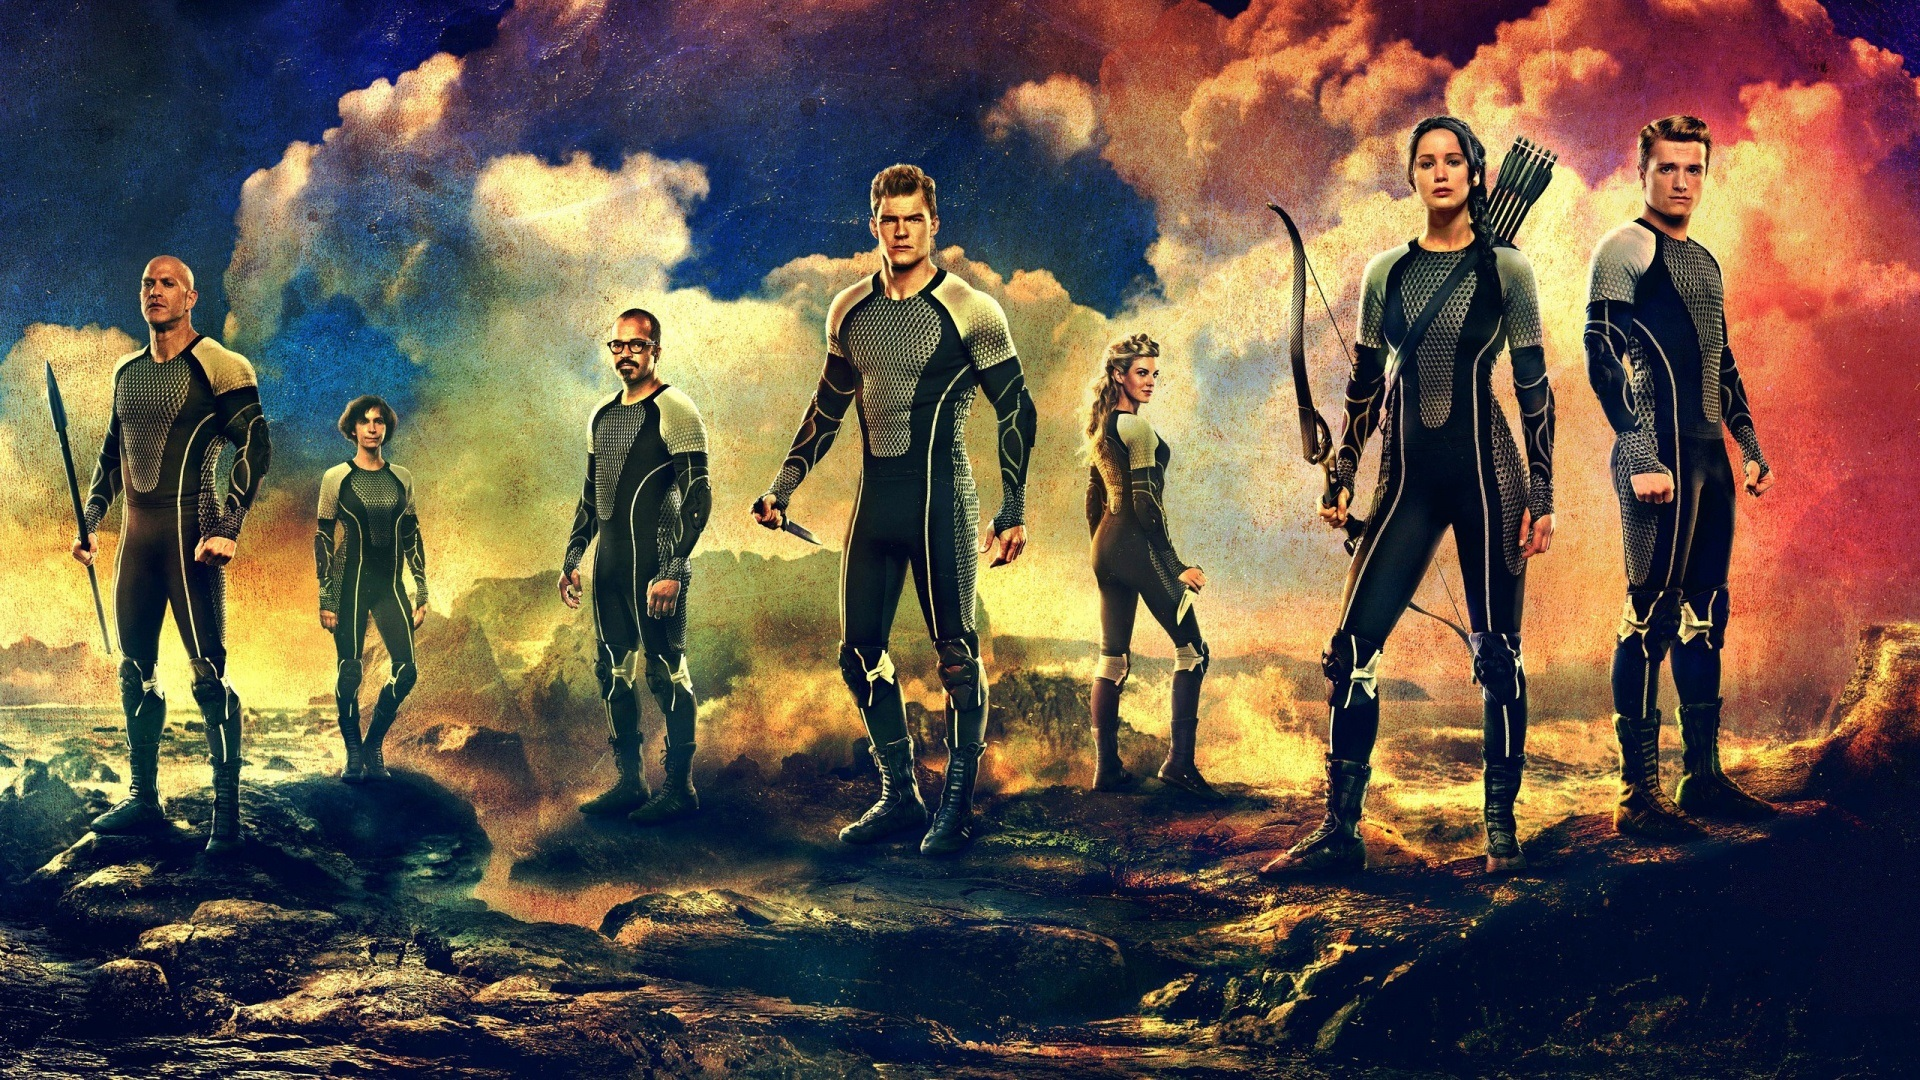 The Hunger Games Wallpaper 7